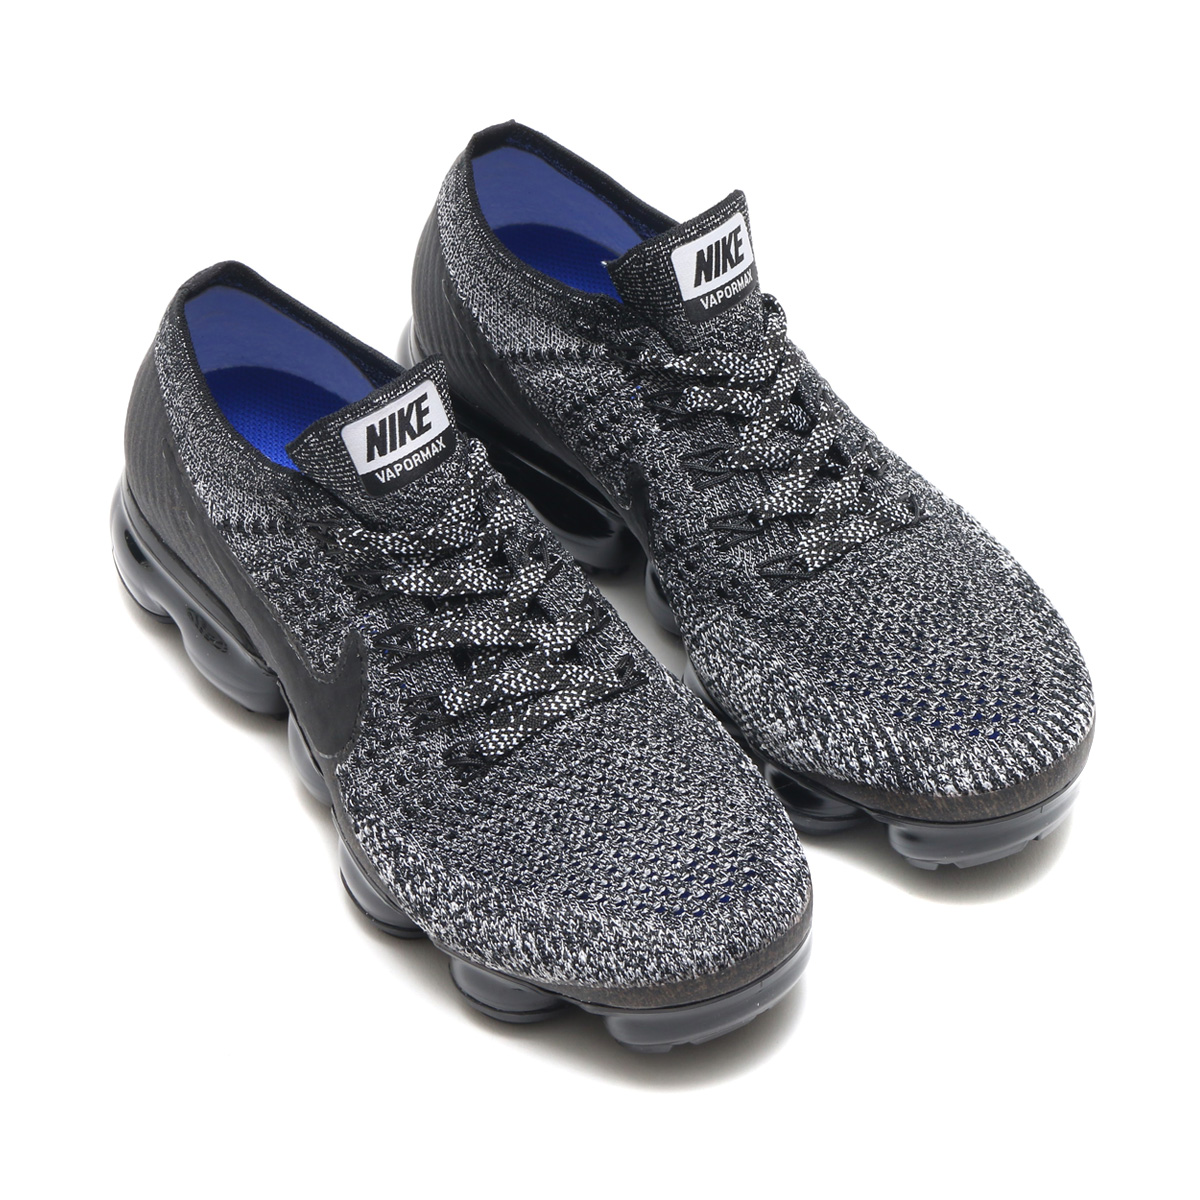 315c62ca9e13 NIKE WMNS AIR VAPORMAX FLYKNIT (Nike women air vapor max fried food knit) ( BLACK BLACK-WHITE-RACER BLUE) 17HO-S